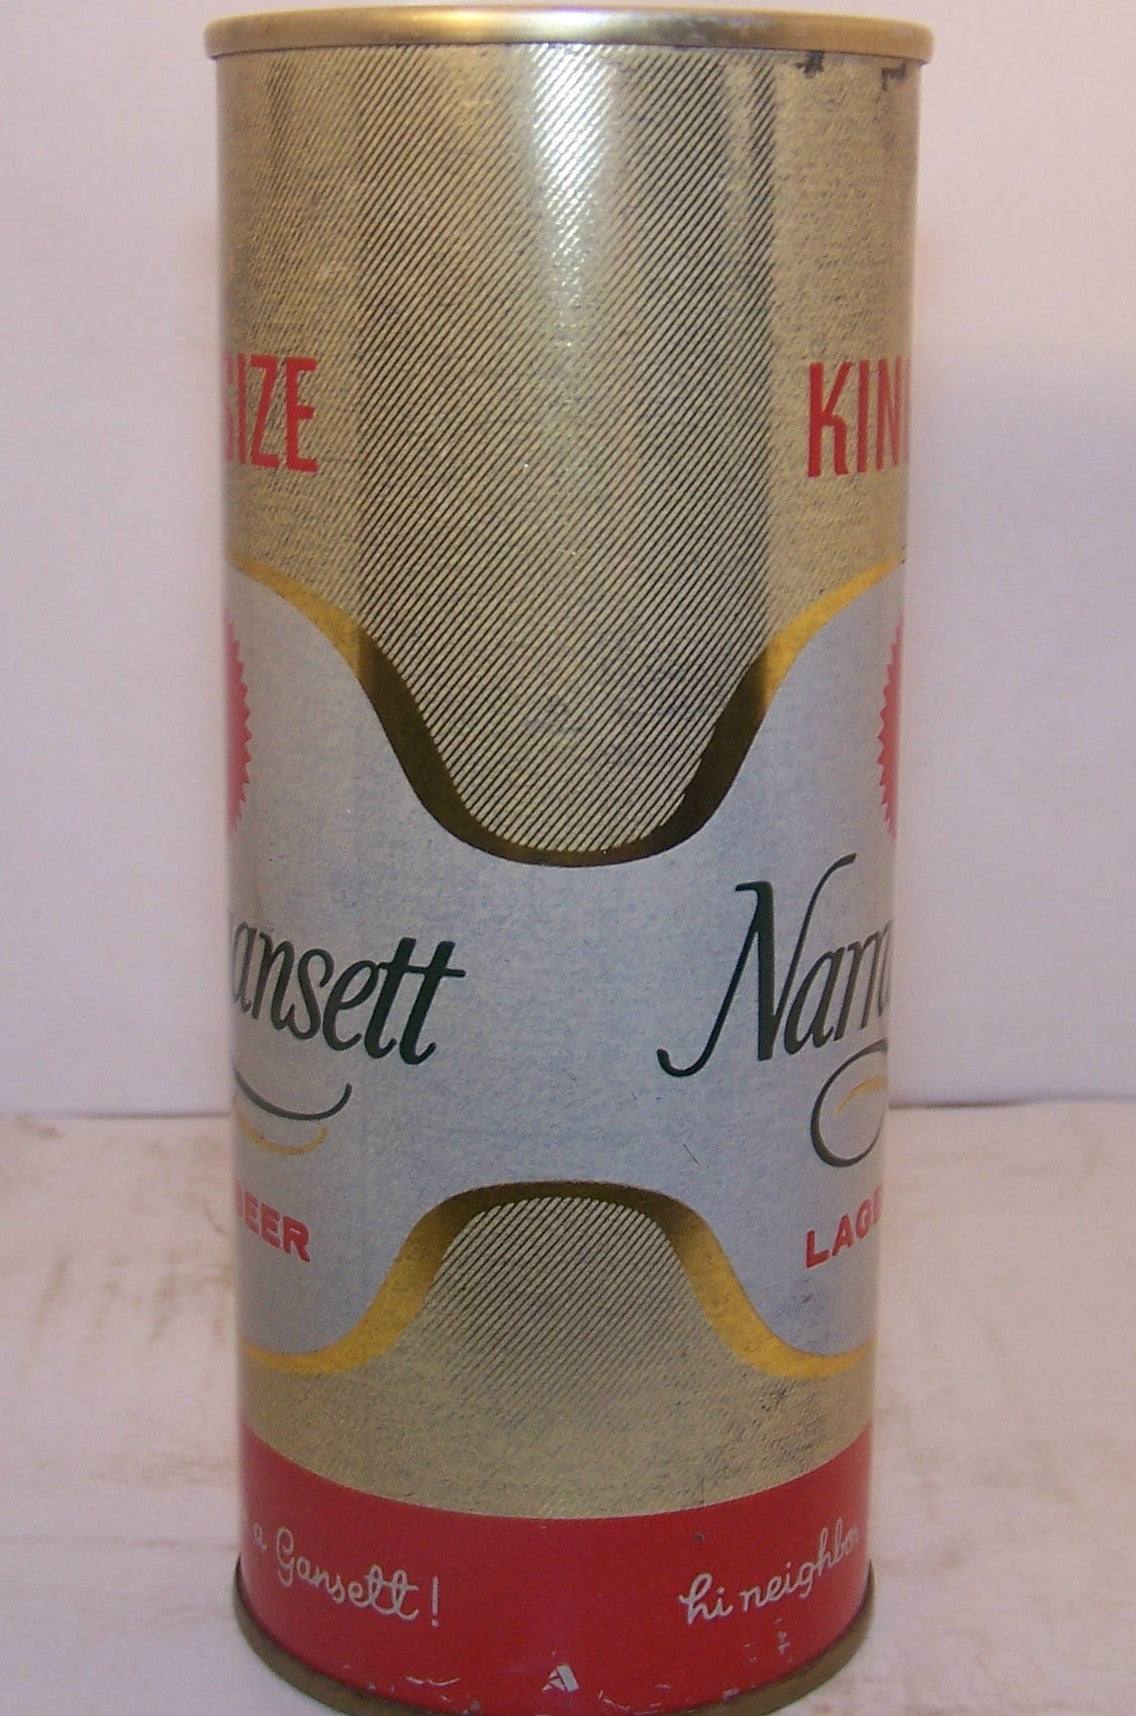 Narragansett Lager Beer king size, USBC II 157-14 Grade 1- Sold on 2/11/15